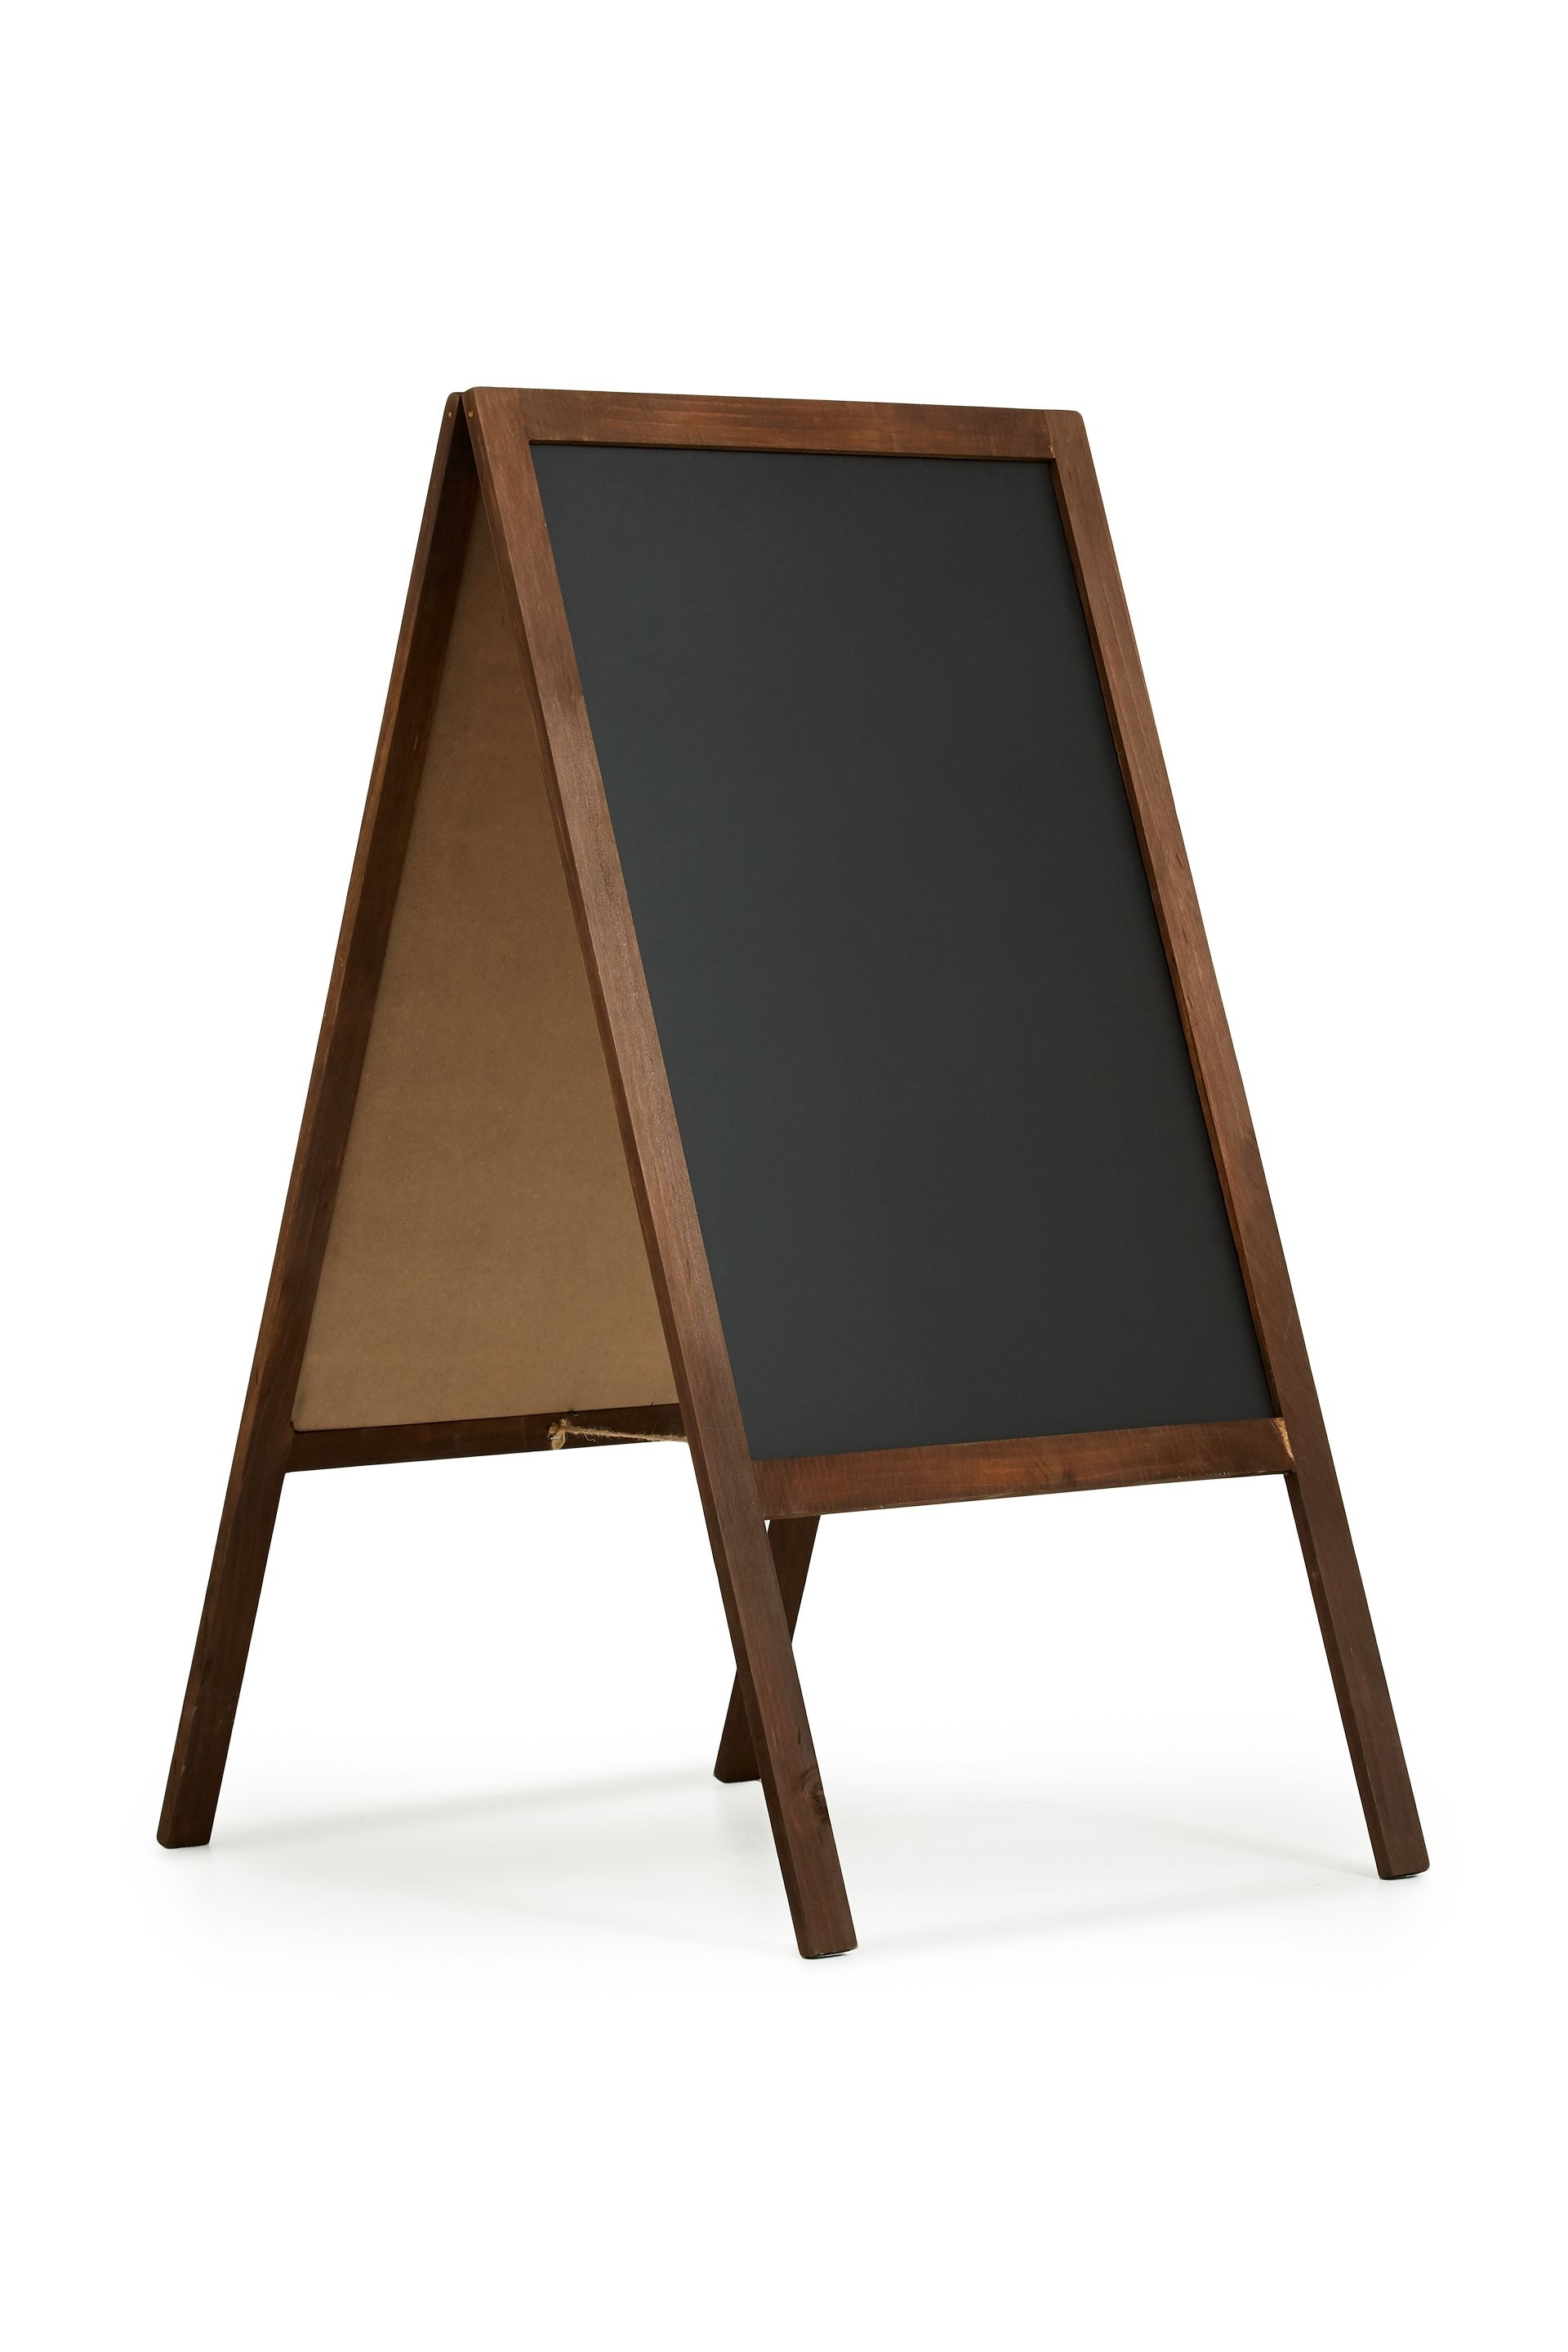 1920x2880 Chalkboards Amp More Typo